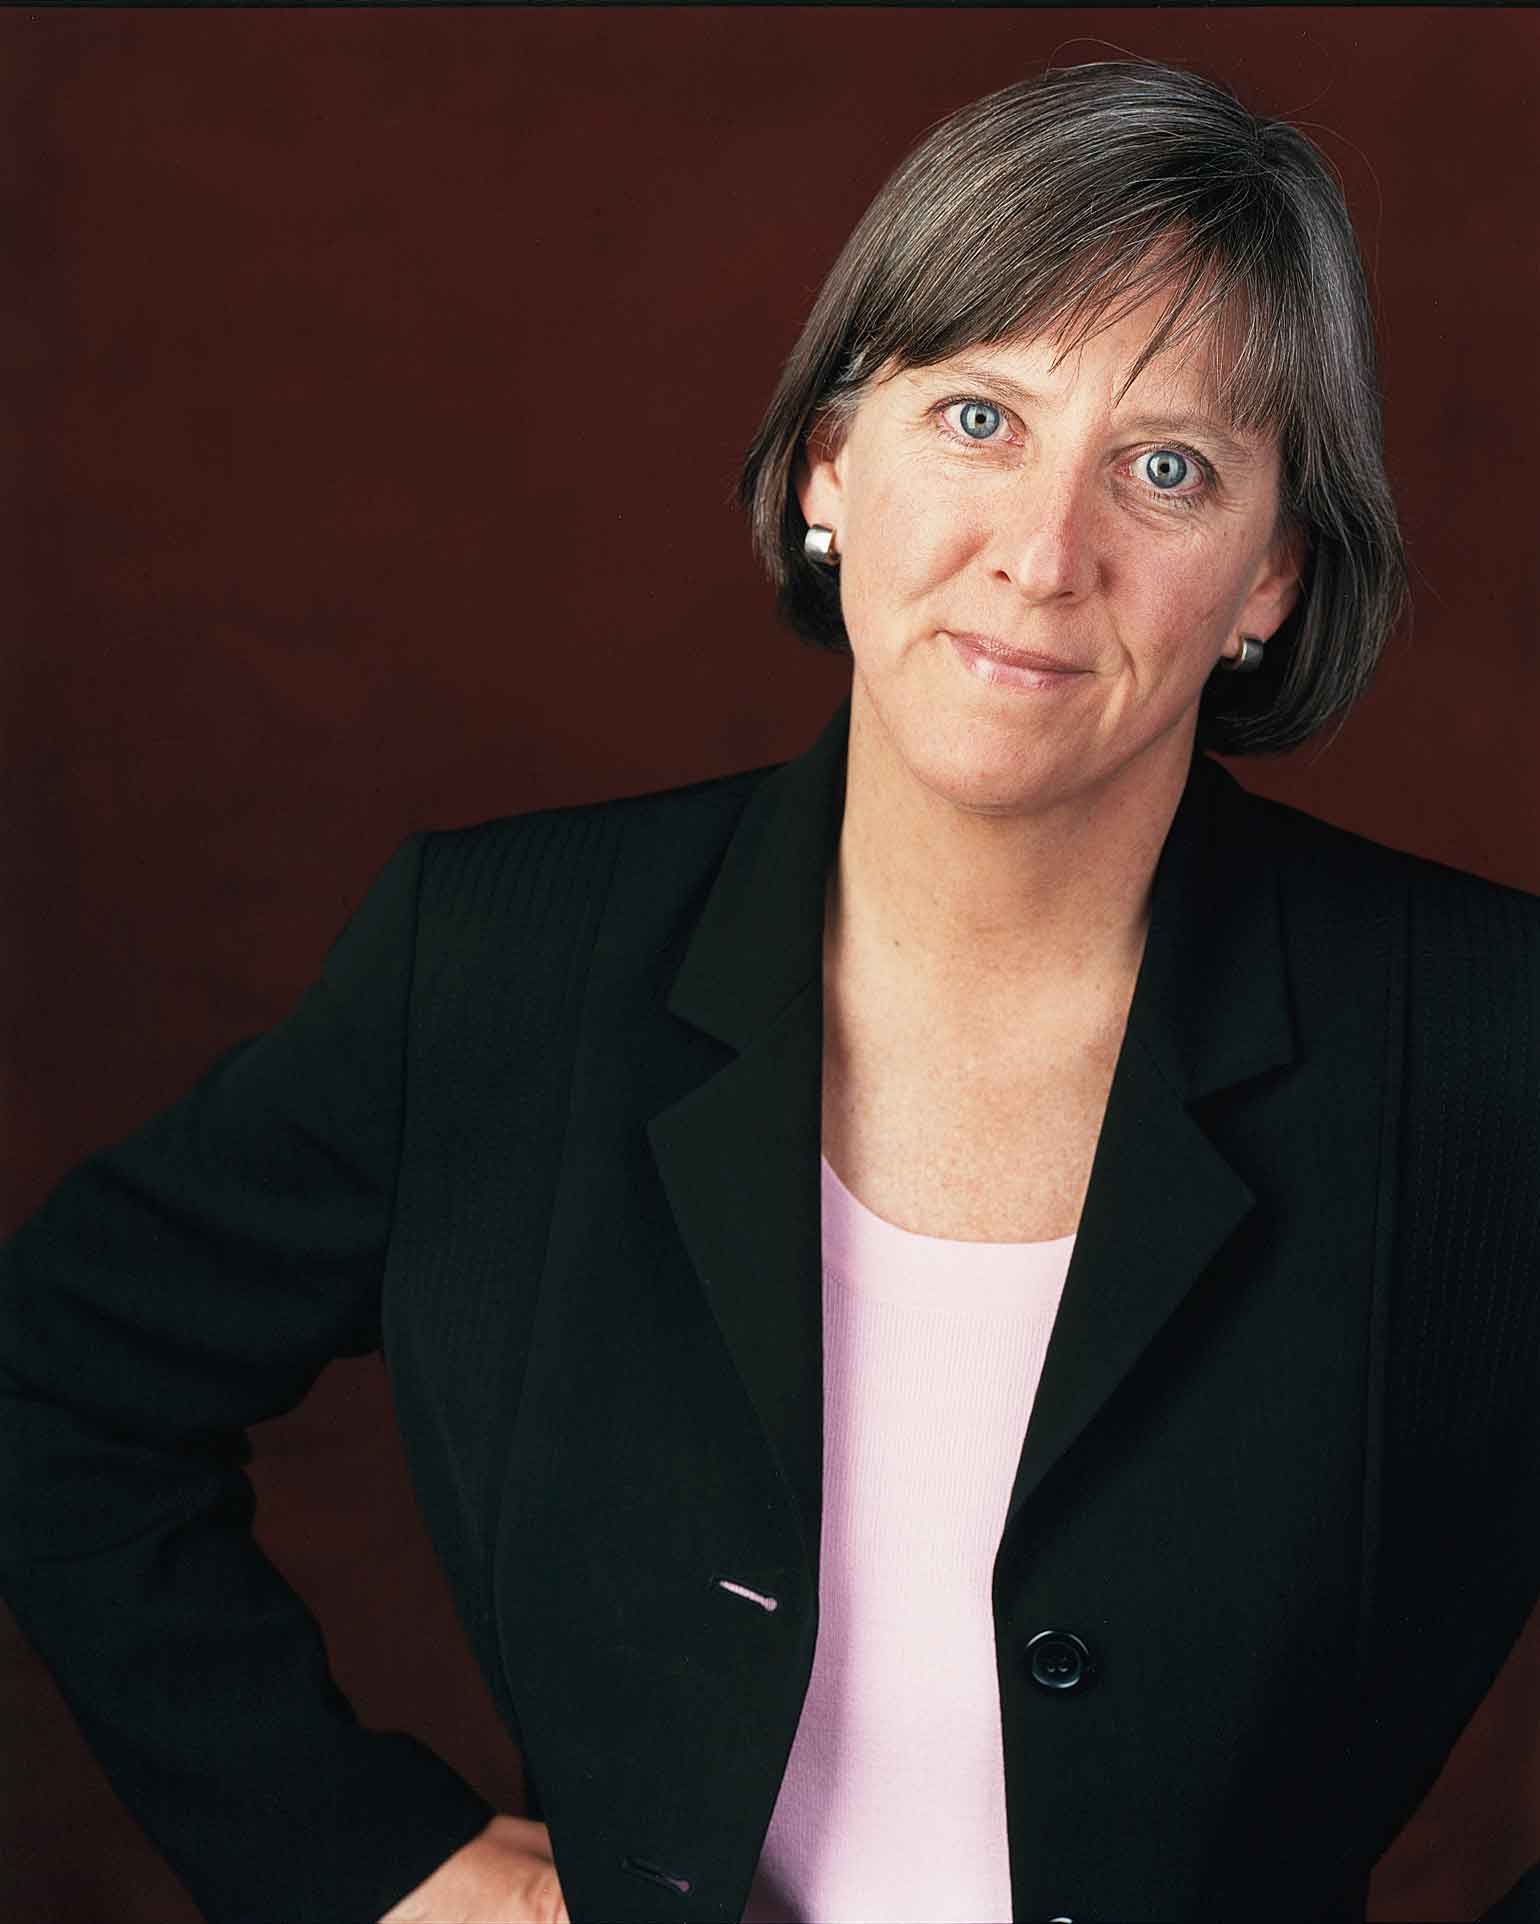 Mary Meeker: The Analyst didn't see browsers as a business — until she heard Clark was involved.